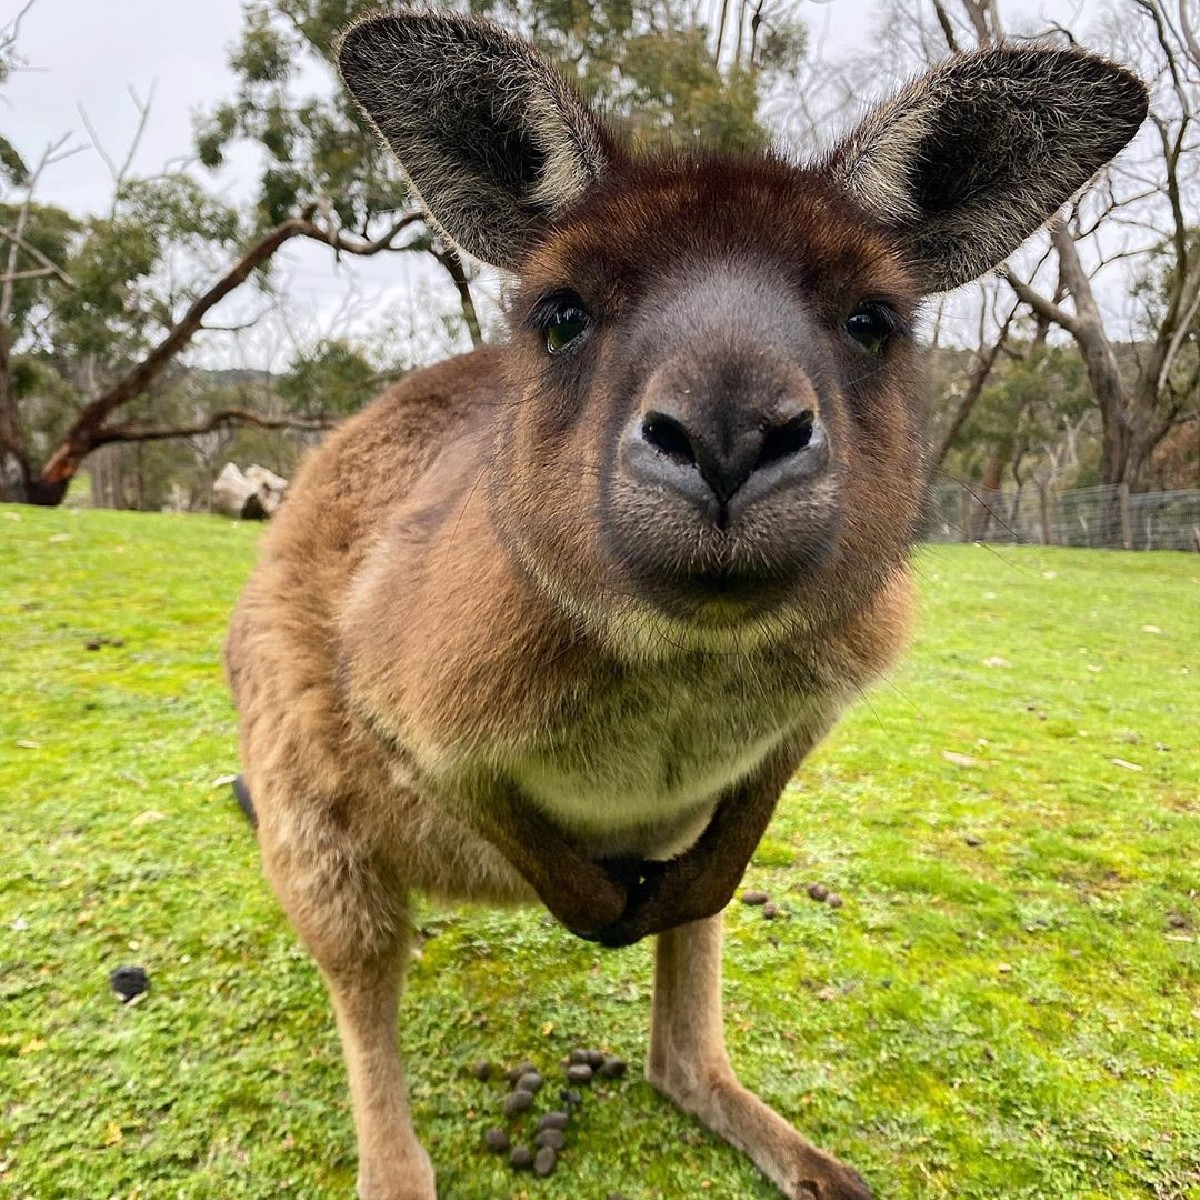 """""""Is that the latest iPhone? I heard it's roo-ly good!"""" 😂  As a wildlife keeper at #ClelandWildlifePark in @southaustralia's #AdelaideHills, IG/koala_keeper_ness is no stranger to inquisitive #kangaroos like this friendly critter here!   #seeaustralia #seesouthaustralia https://t.co/GLicG9YGqQ"""